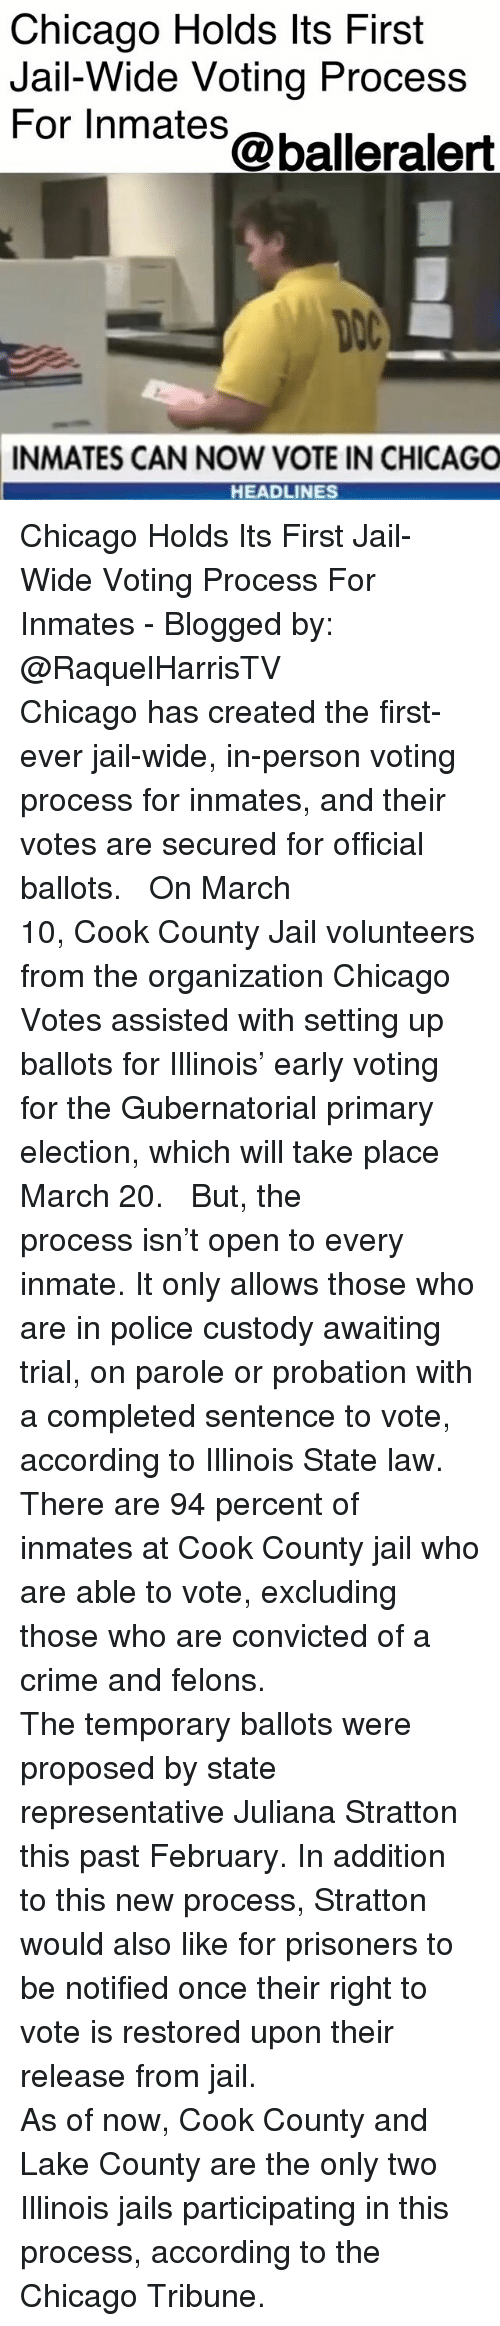 chicago tribune: Chicago Holds lts First  Jail-Wide Voting Process  For Inmates@balleralert  DOC  INMATES CAN NOW VOTE IN CHICAGO  HEADLINES Chicago Holds Its First Jail-Wide Voting Process For Inmates - Blogged by: @RaquelHarrisTV ⠀⠀⠀⠀⠀⠀⠀⠀⠀ ⠀⠀⠀⠀⠀⠀⠀⠀⠀ Chicago has created the first-ever jail-wide, in-person voting process for inmates, and their votes are secured for official ballots. ⠀⠀⠀⠀⠀⠀⠀⠀⠀ ⠀⠀⠀⠀⠀⠀⠀⠀⠀ On March 10, Cook County Jail volunteers from the organization Chicago Votes assisted with setting up ballots for Illinois' early voting for the Gubernatorial primary election, which will take place March 20. ⠀⠀⠀⠀⠀⠀⠀⠀⠀ ⠀⠀⠀⠀⠀⠀⠀⠀⠀ But, the process isn't open to every inmate. It only allows those who are in police custody awaiting trial, on parole or probation with a completed sentence to vote, according to Illinois State law. There are 94 percent of inmates at Cook County jail who are able to vote, excluding those who are convicted of a crime and felons. ⠀⠀⠀⠀⠀⠀⠀⠀⠀ ⠀⠀⠀⠀⠀⠀⠀⠀⠀ The temporary ballots were proposed by state representative Juliana Stratton this past February. In addition to this new process, Stratton would also like for prisoners to be notified once their right to vote is restored upon their release from jail. ⠀⠀⠀⠀⠀⠀⠀⠀⠀ ⠀⠀⠀⠀⠀⠀⠀⠀⠀ As of now, Cook County and Lake County are the only two Illinois jails participating in this process, according to the Chicago Tribune.